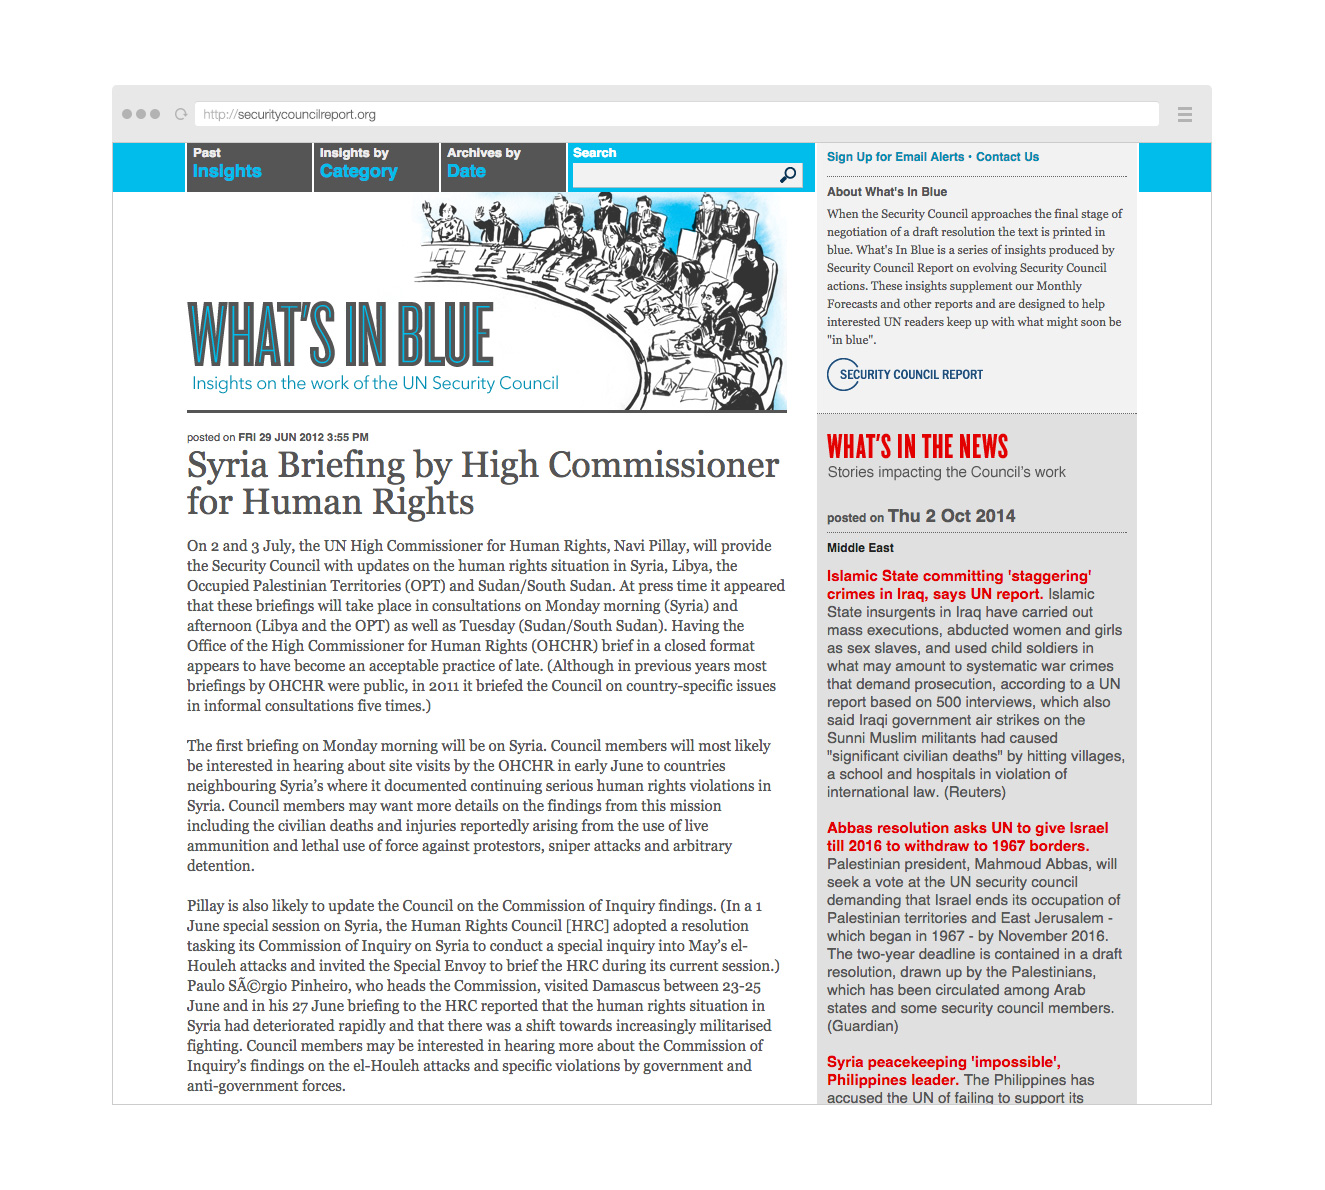 Point Five What's in Blue website